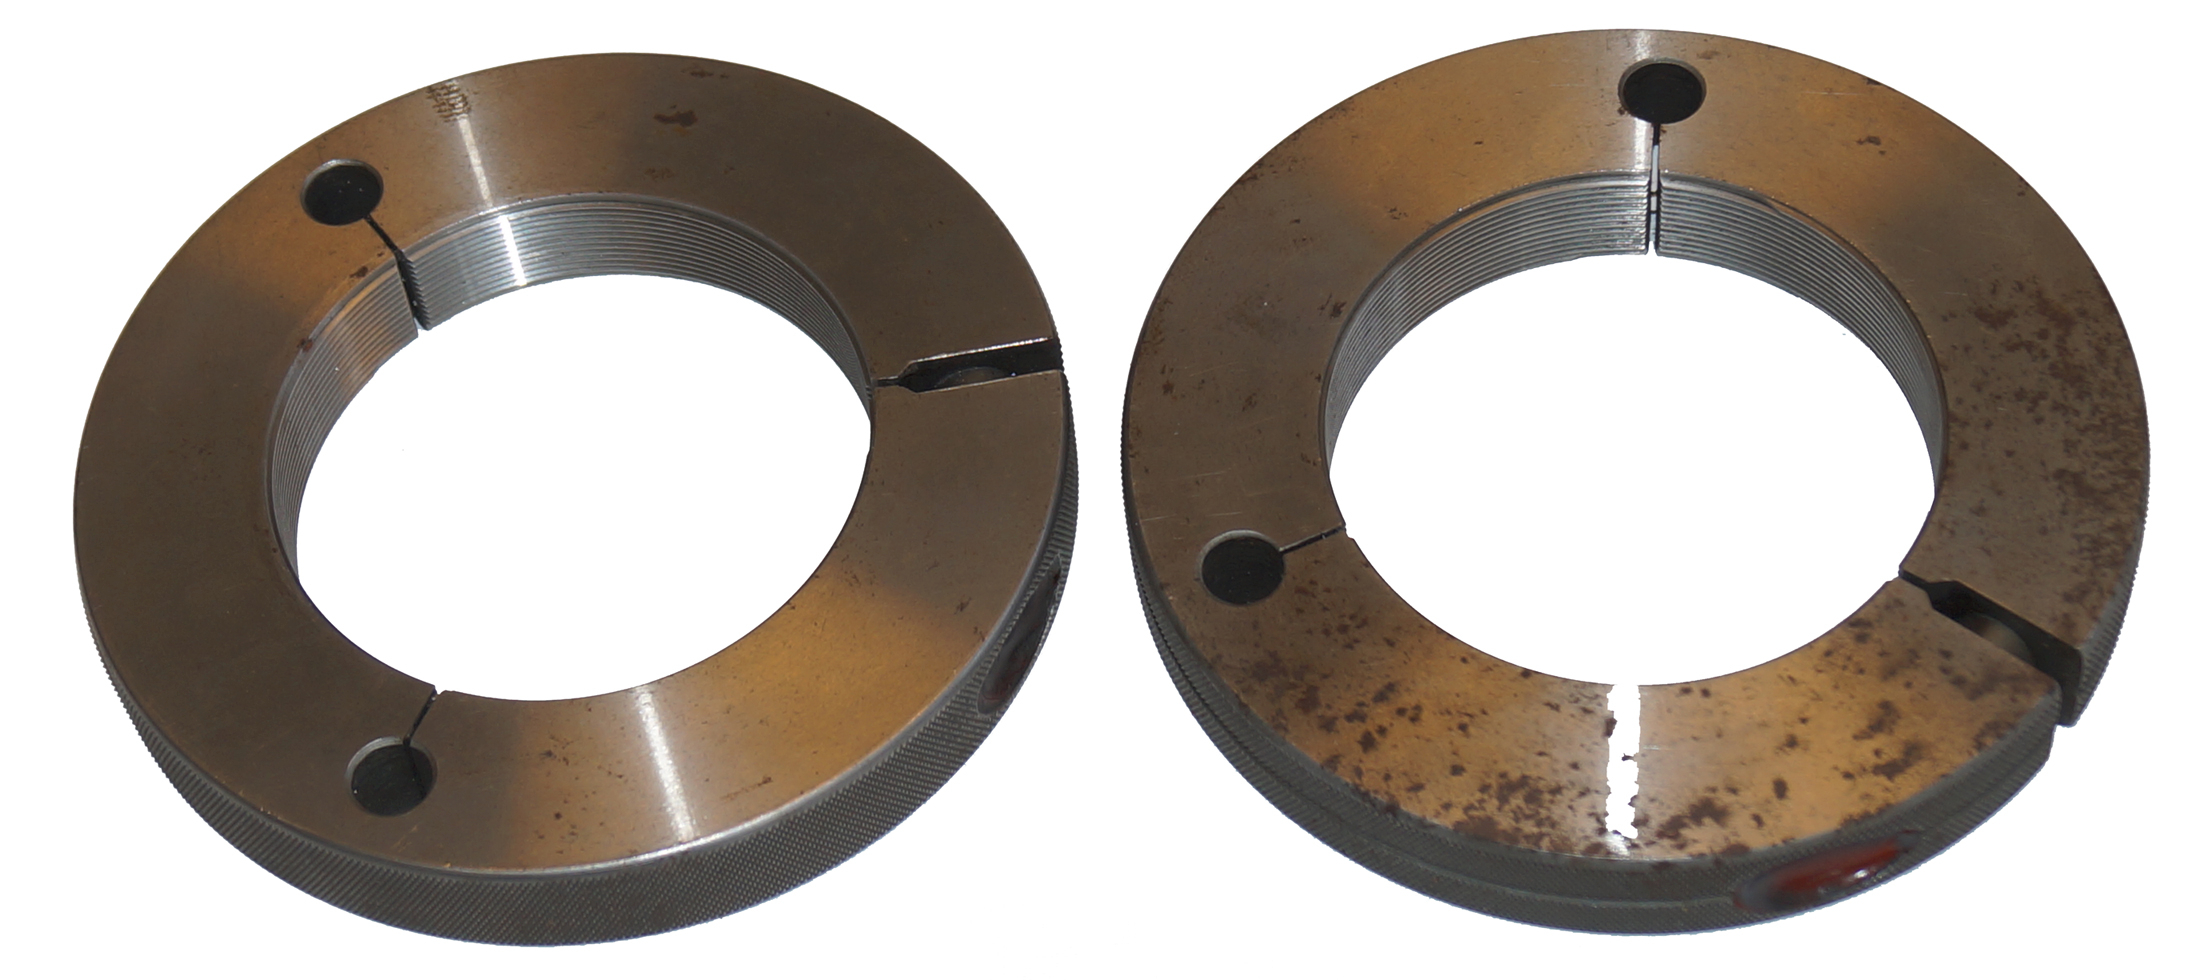 3-7/8-16 UN-2A Thread Gage Ring, Go NoGo